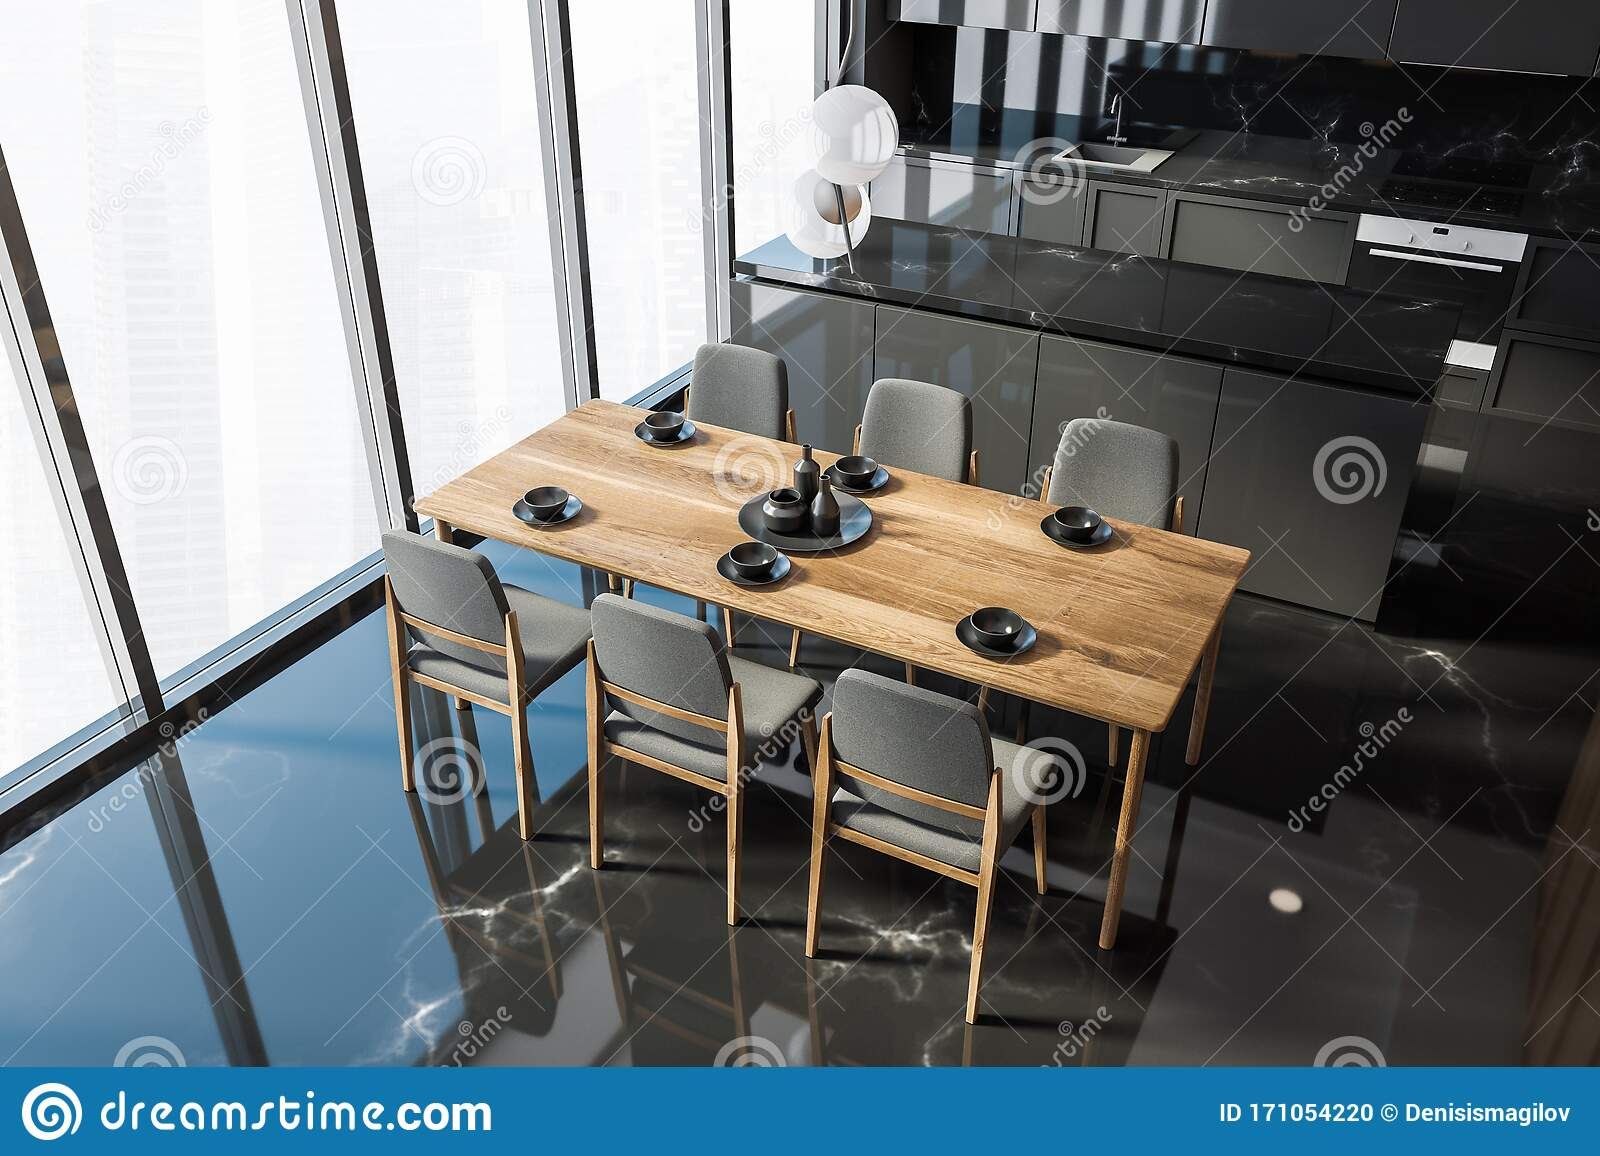 Black Marble Kitchen With Table, Top View Stock Illustration ...